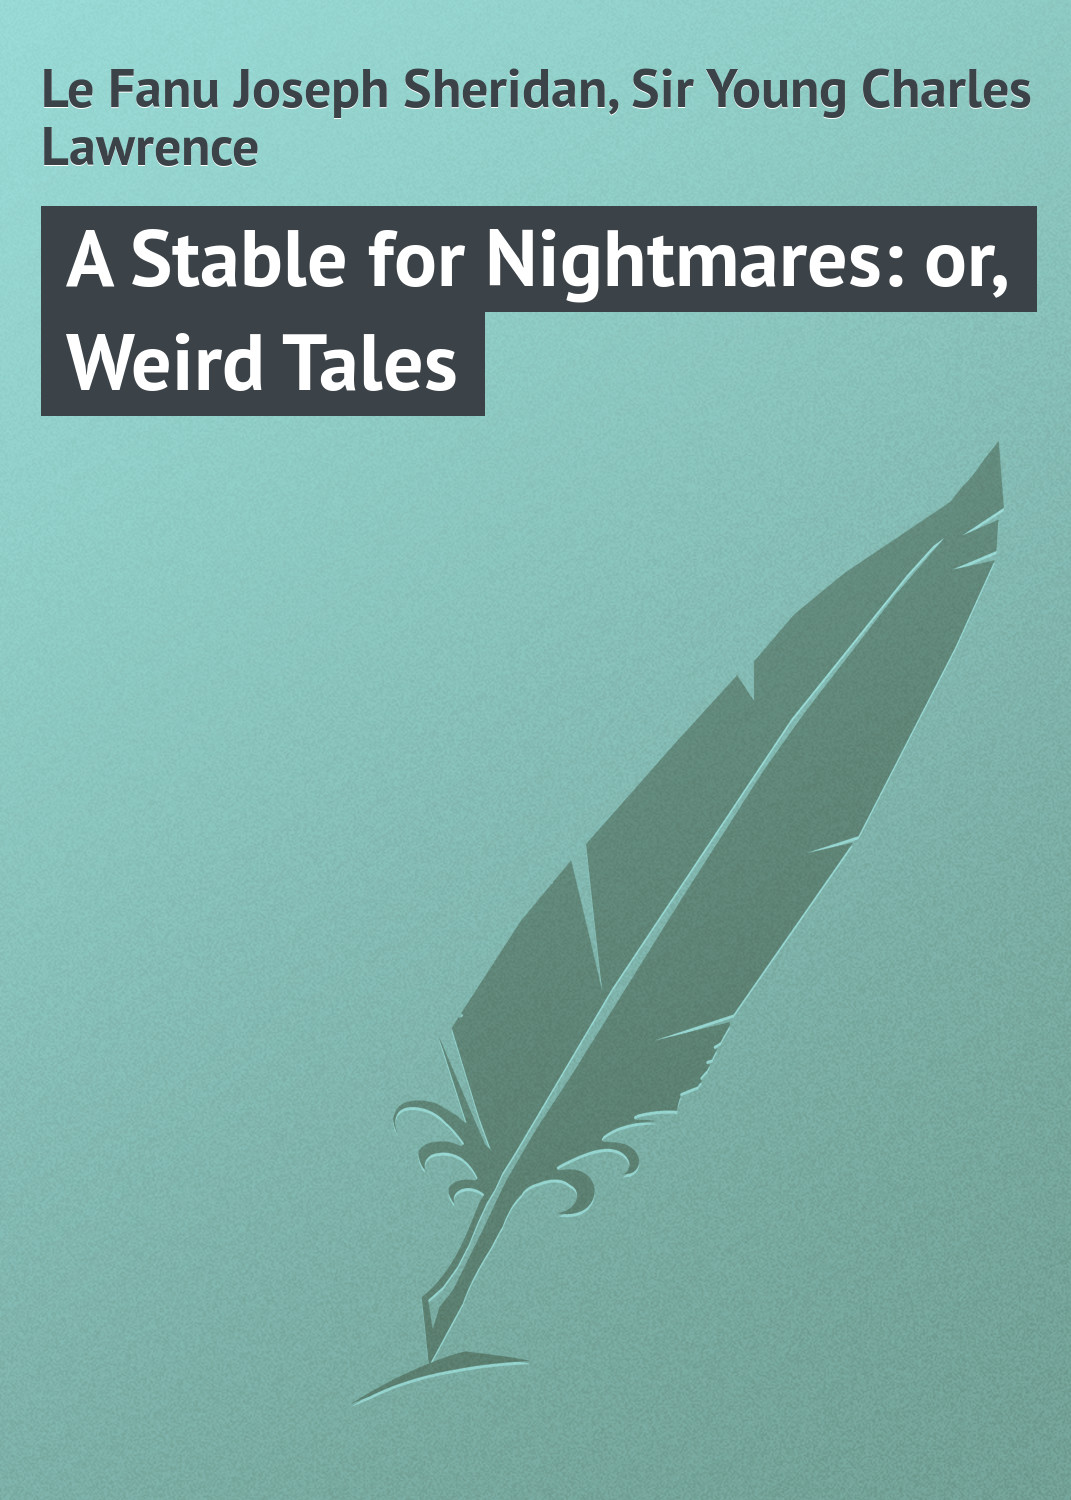 Le Fanu Joseph Sheridan A Stable for Nightmares: or, Weird Tales joseph thomas le fanu guy deverell 1 гай деверелл 1 на английском языке